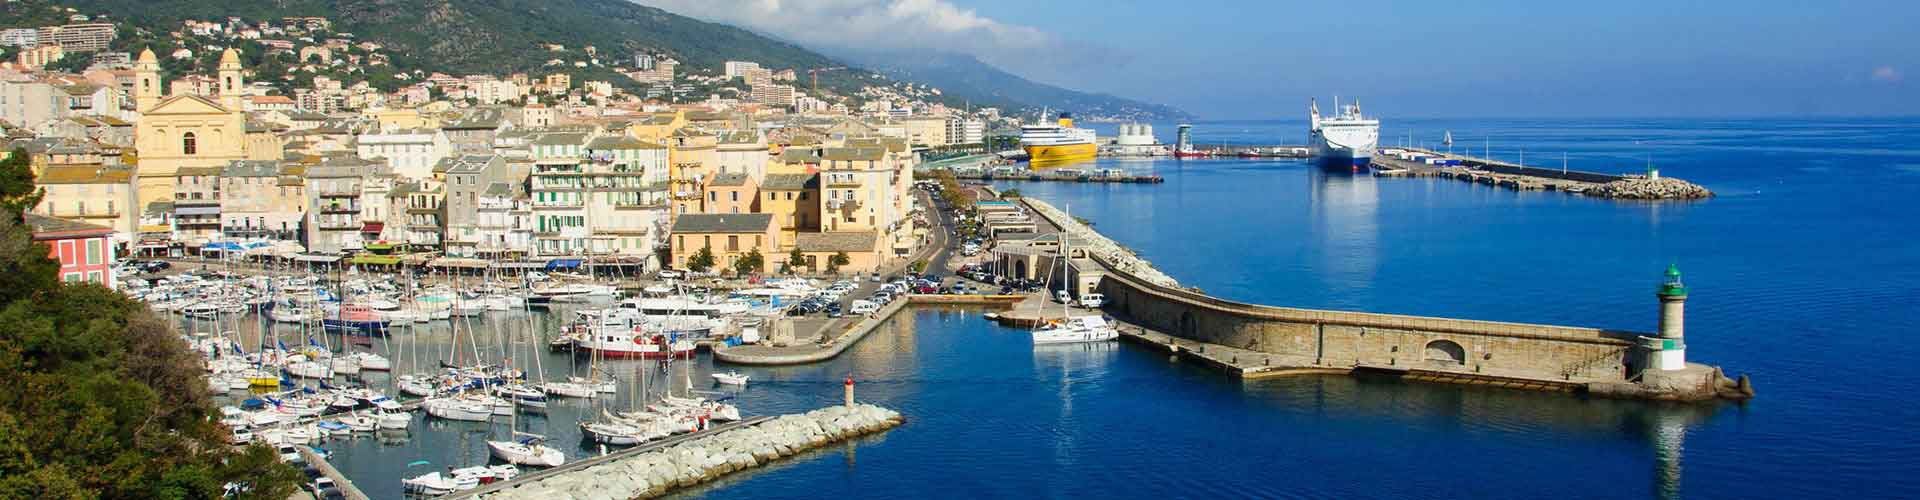 Bastia France  city images : bastia france bastia youth hostels in bastia maps of bastia photos and ...